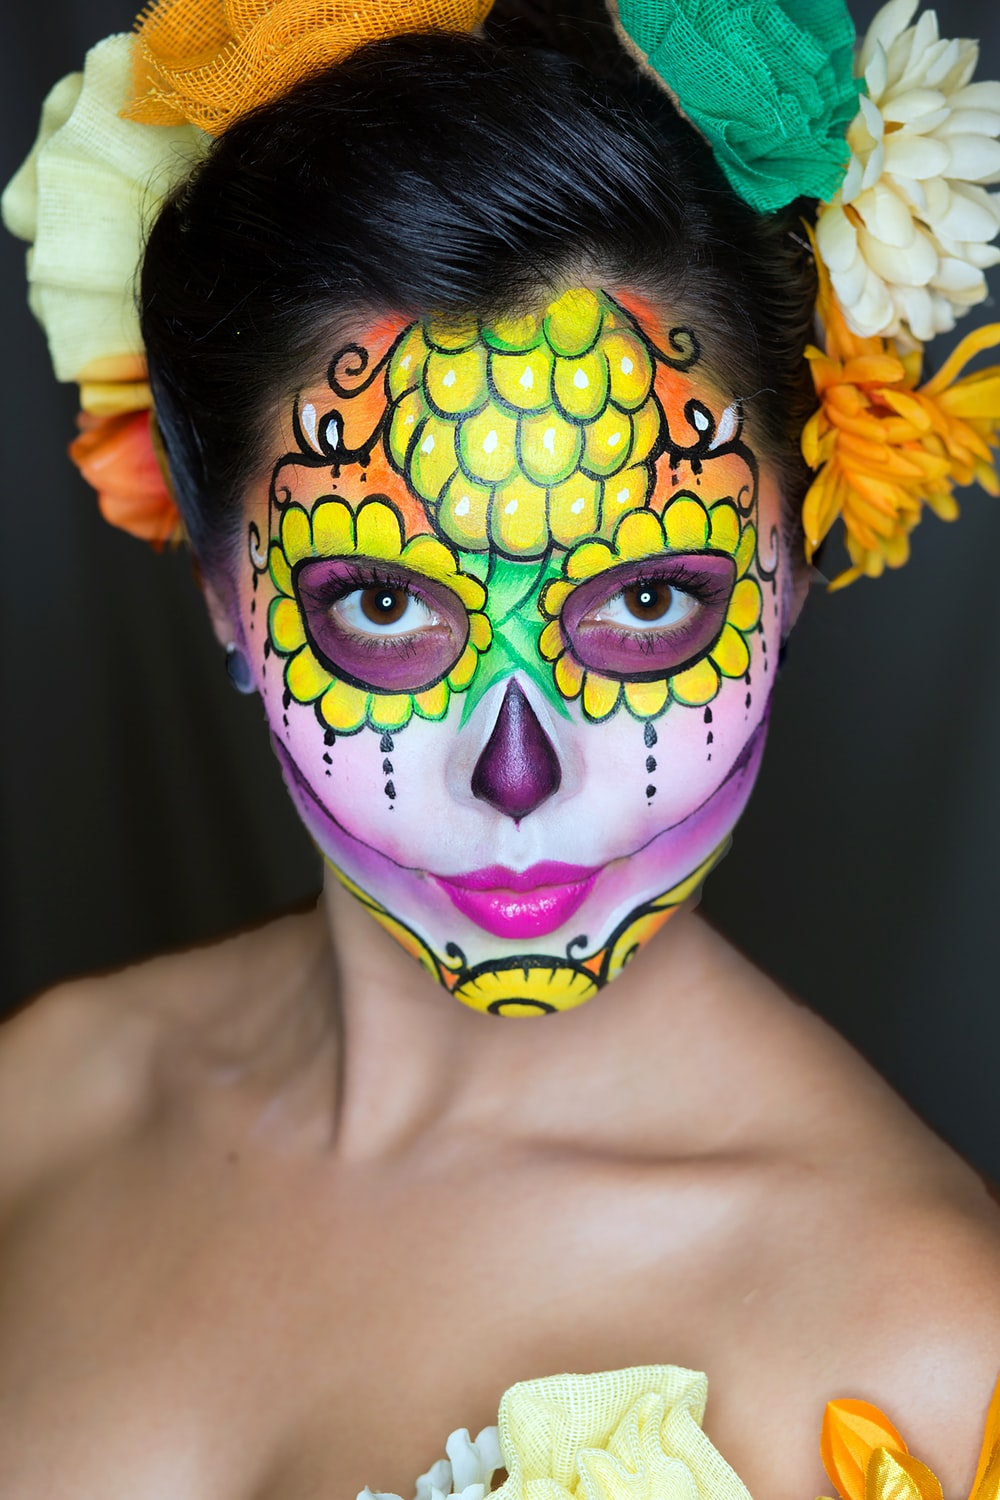 woman with yellow and purple face paint